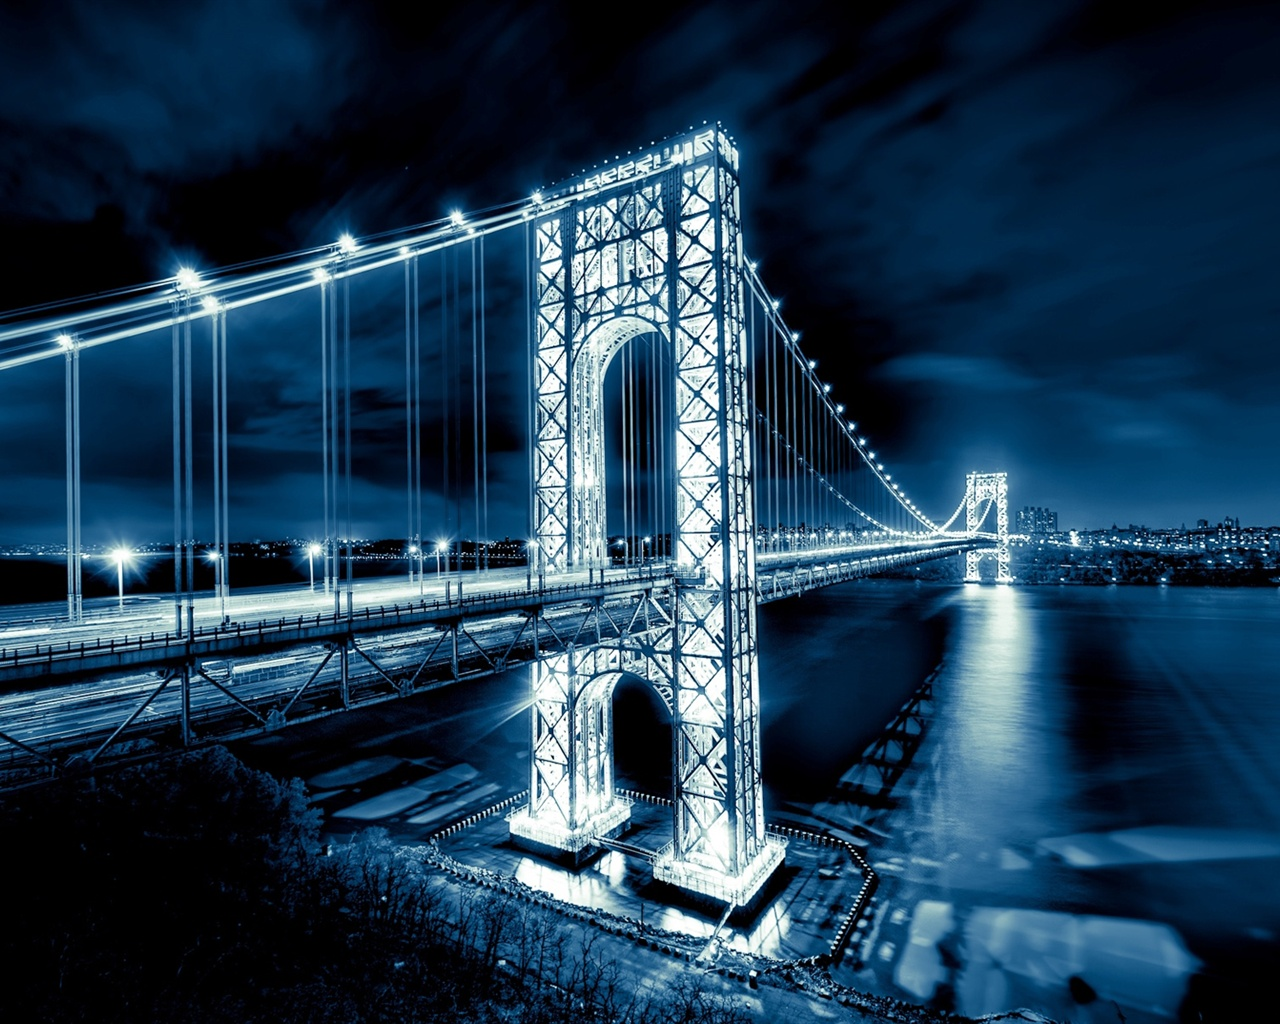 Turkey Wallpaper For Iphone Wallpaper George Washington Bridge New Jersey Manhattan